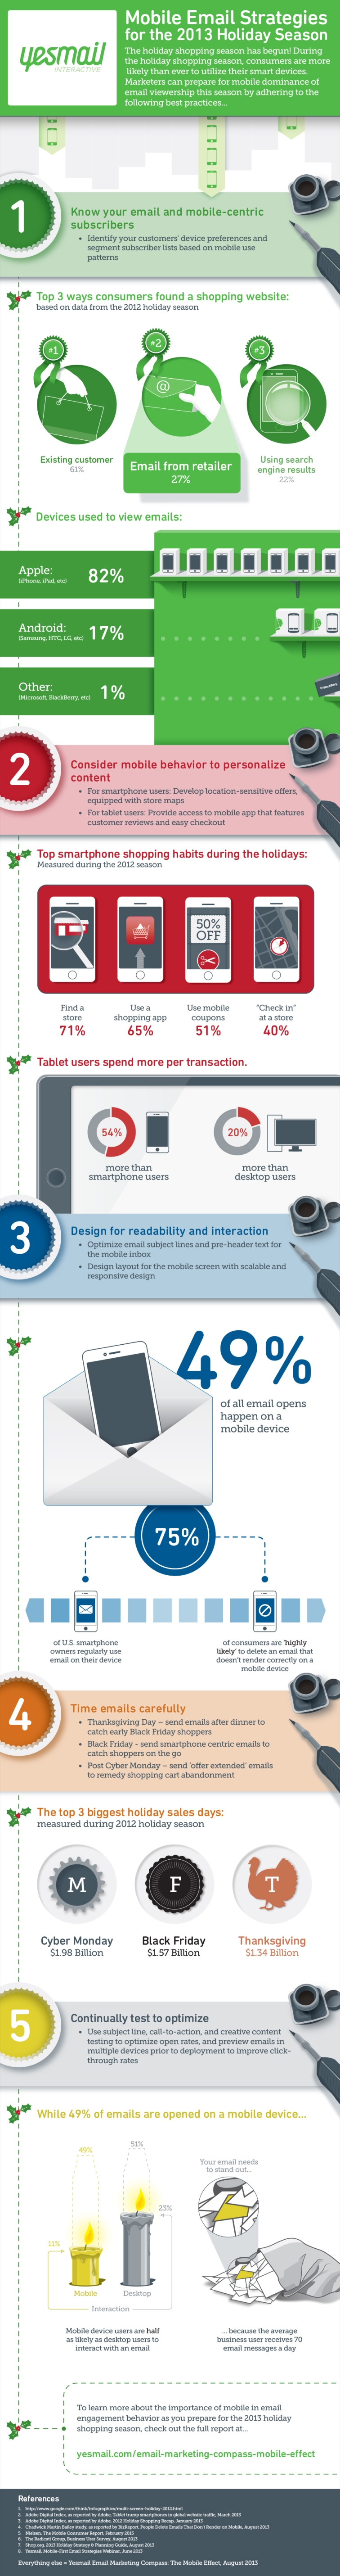 Mobile Email Strategies for the 2013 Holiday Season